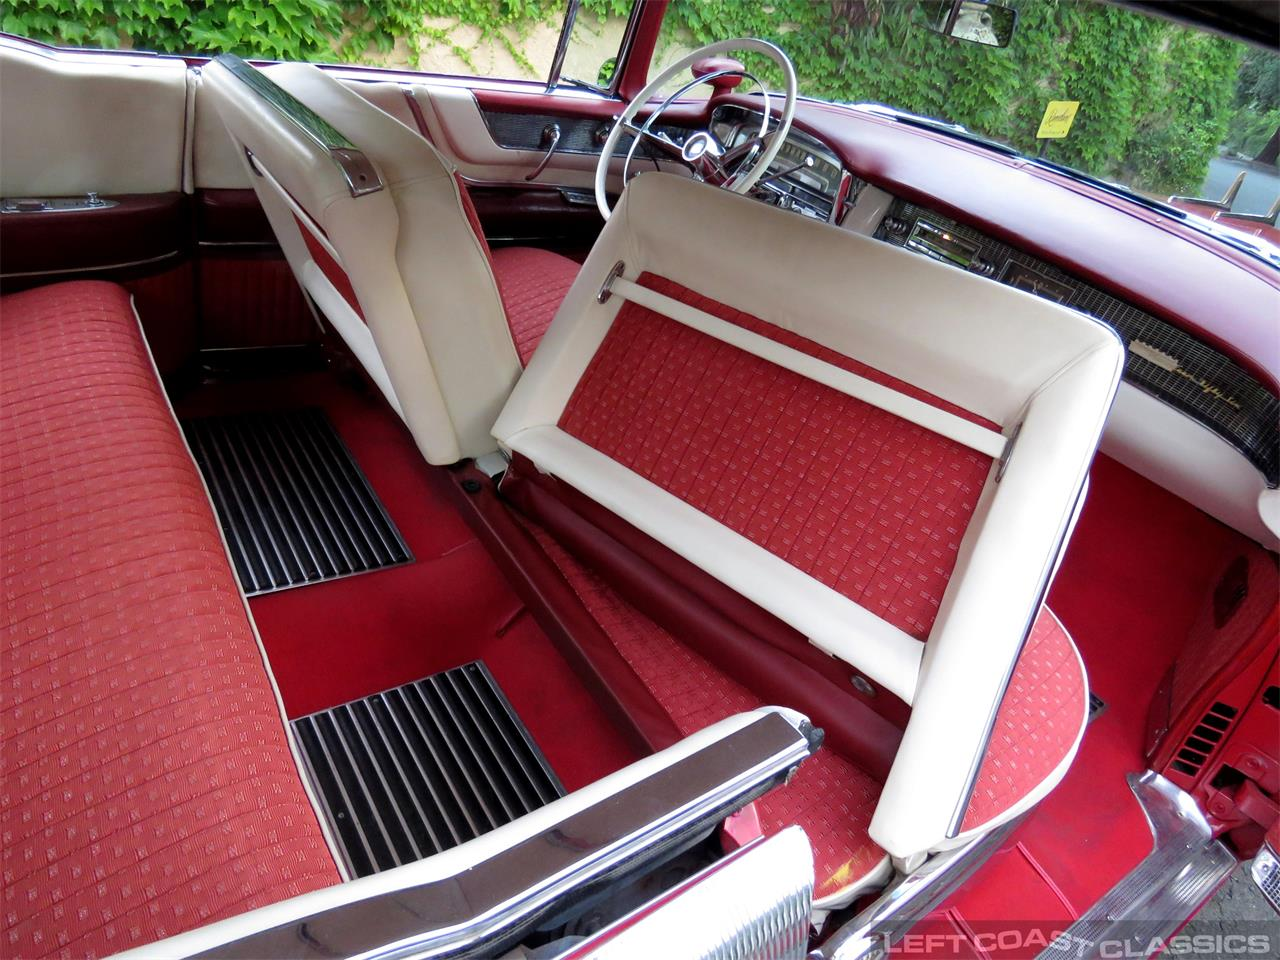 Large Picture of Classic '56 Cadillac Eldorado Seville located in Sonoma California - $39,500.00 Offered by Left Coast Classics - QD3M